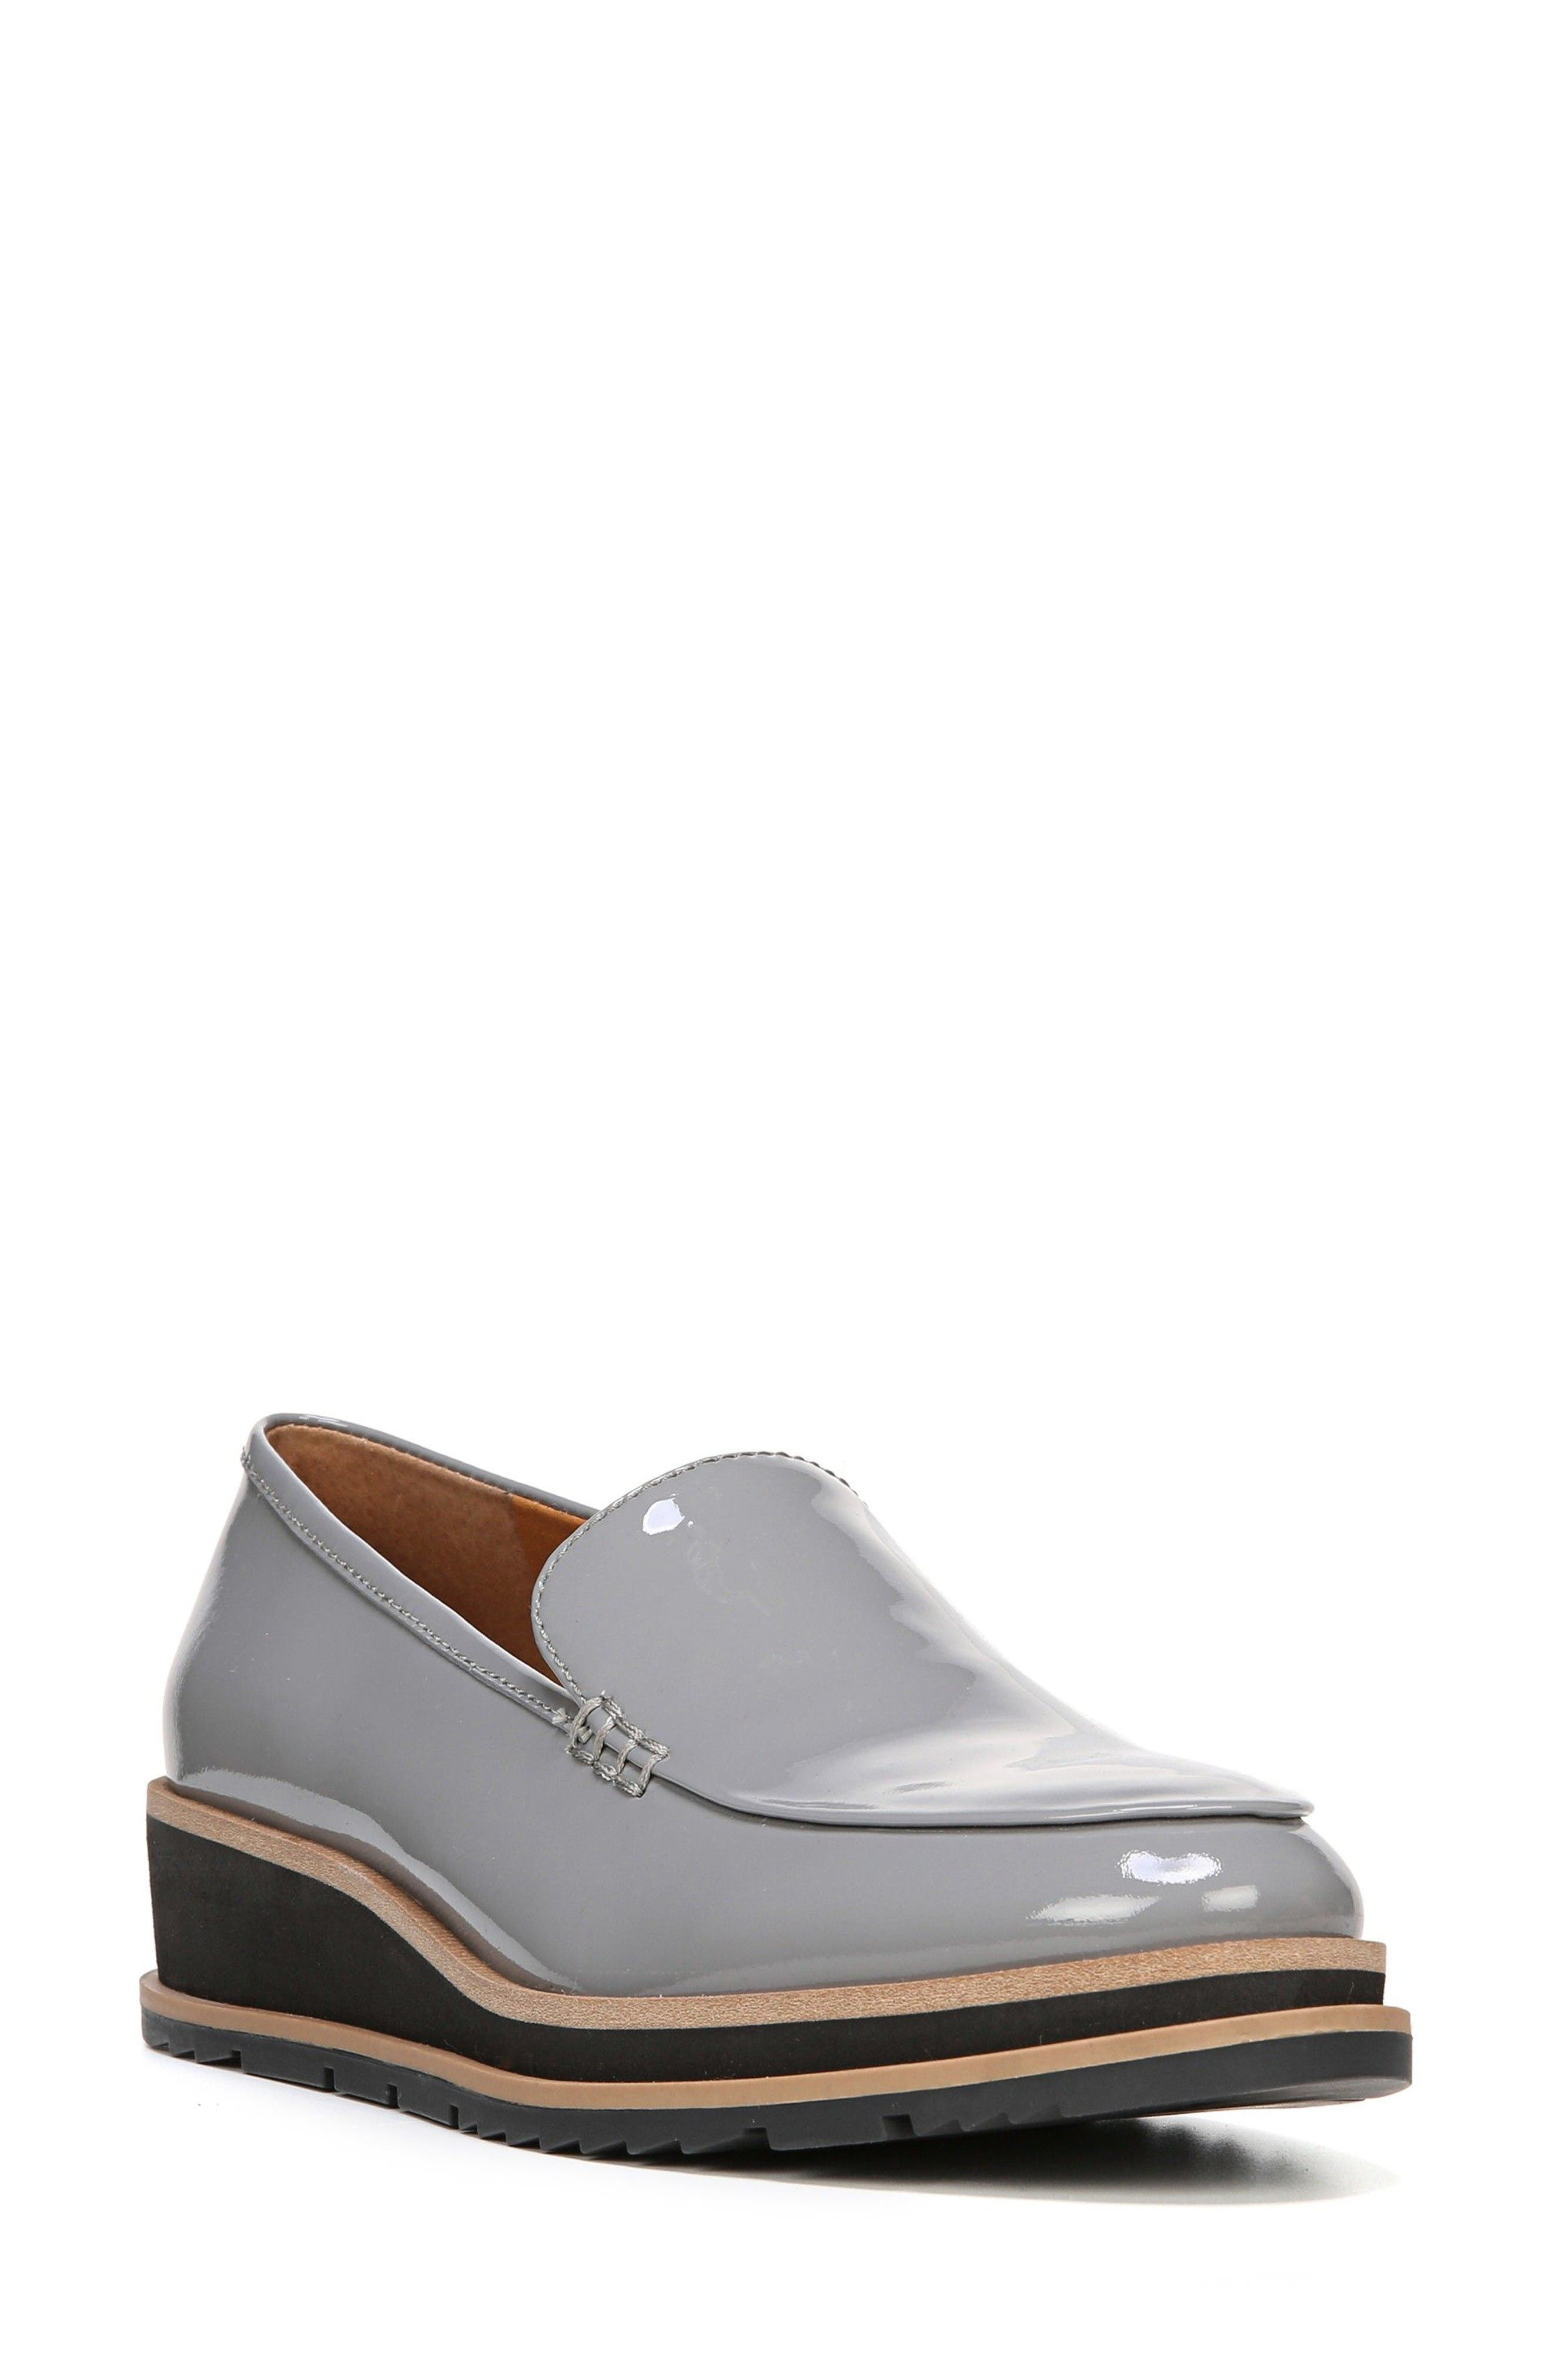 Ayers Loafer Flat,                         Main,                         color, Grey Patent